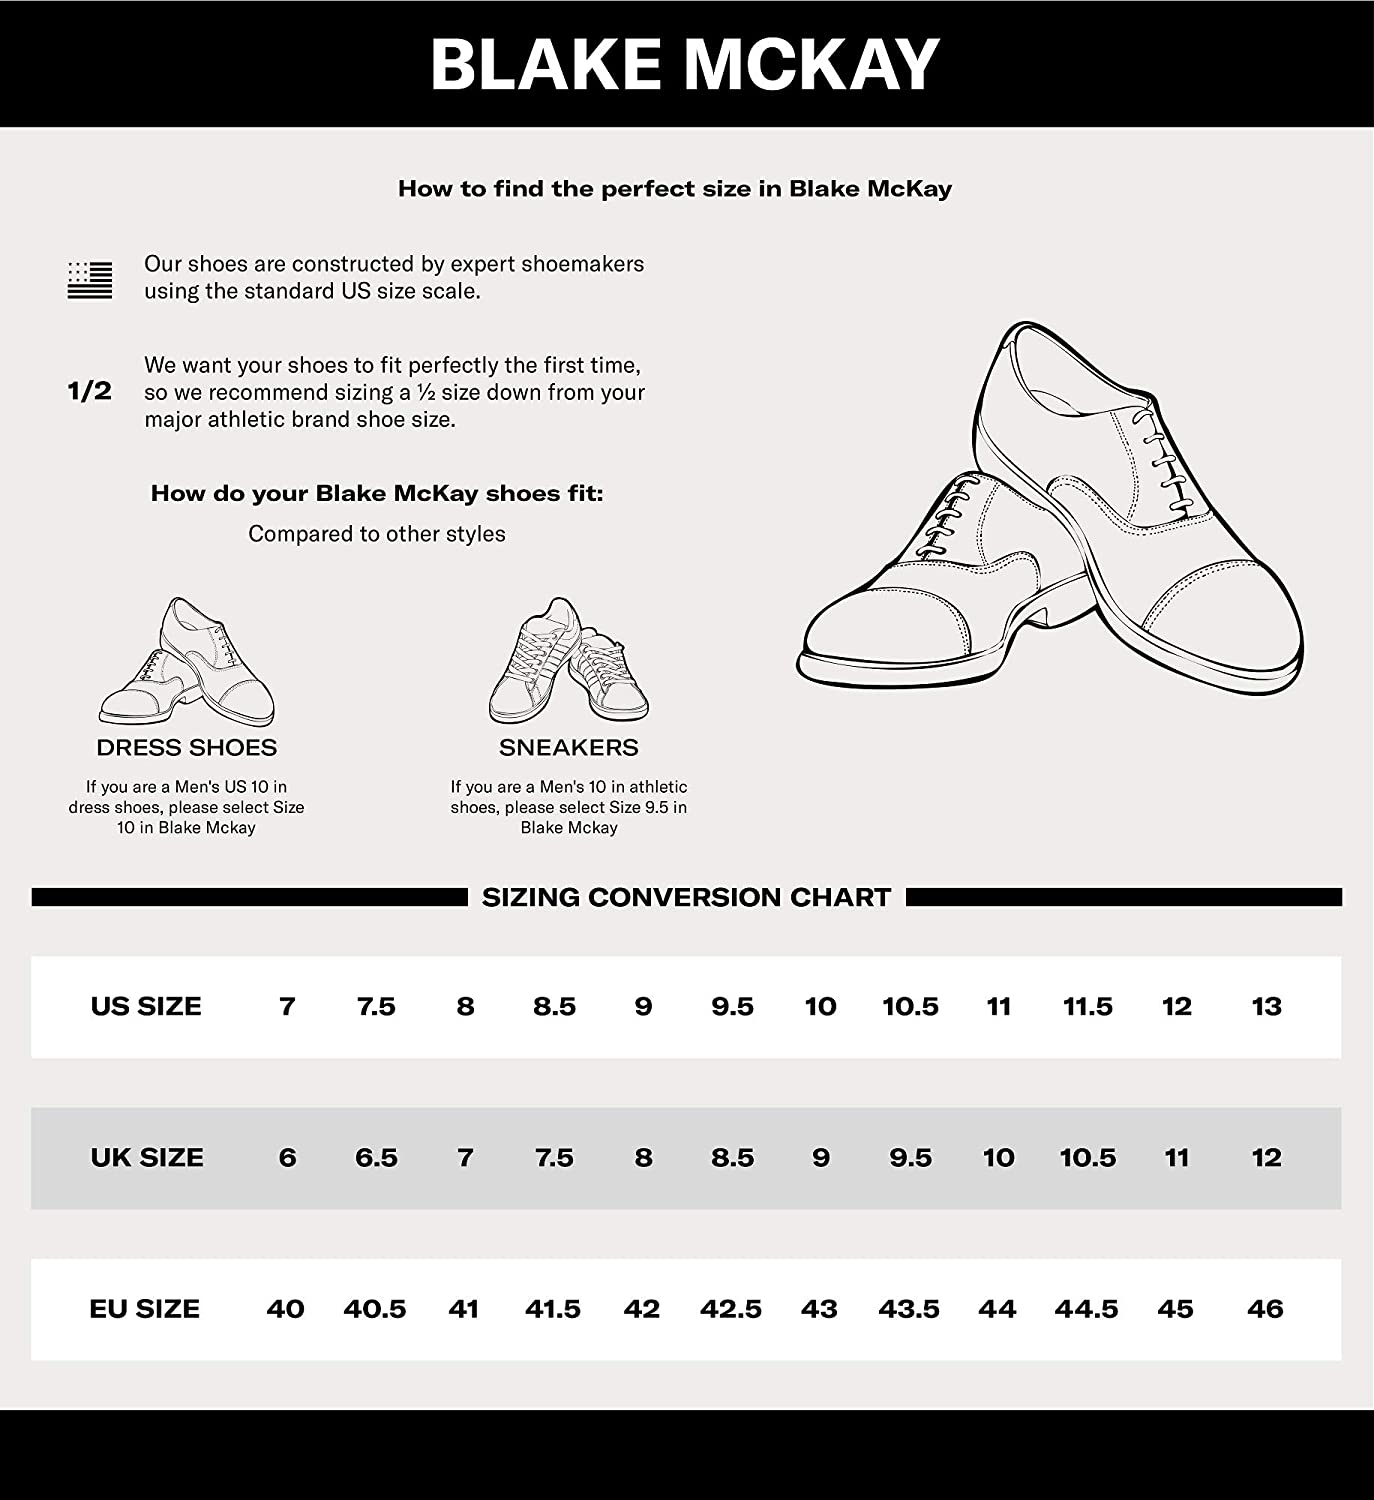 Blake McKay: Zachary Mens Casual Boot Leather Plain Toe Zip Boot and Durable Non-Slip Rubber Sole for All-Day Comfort. Lace-Up Bootie with a Breathable Leather Lining Ortholite Insole